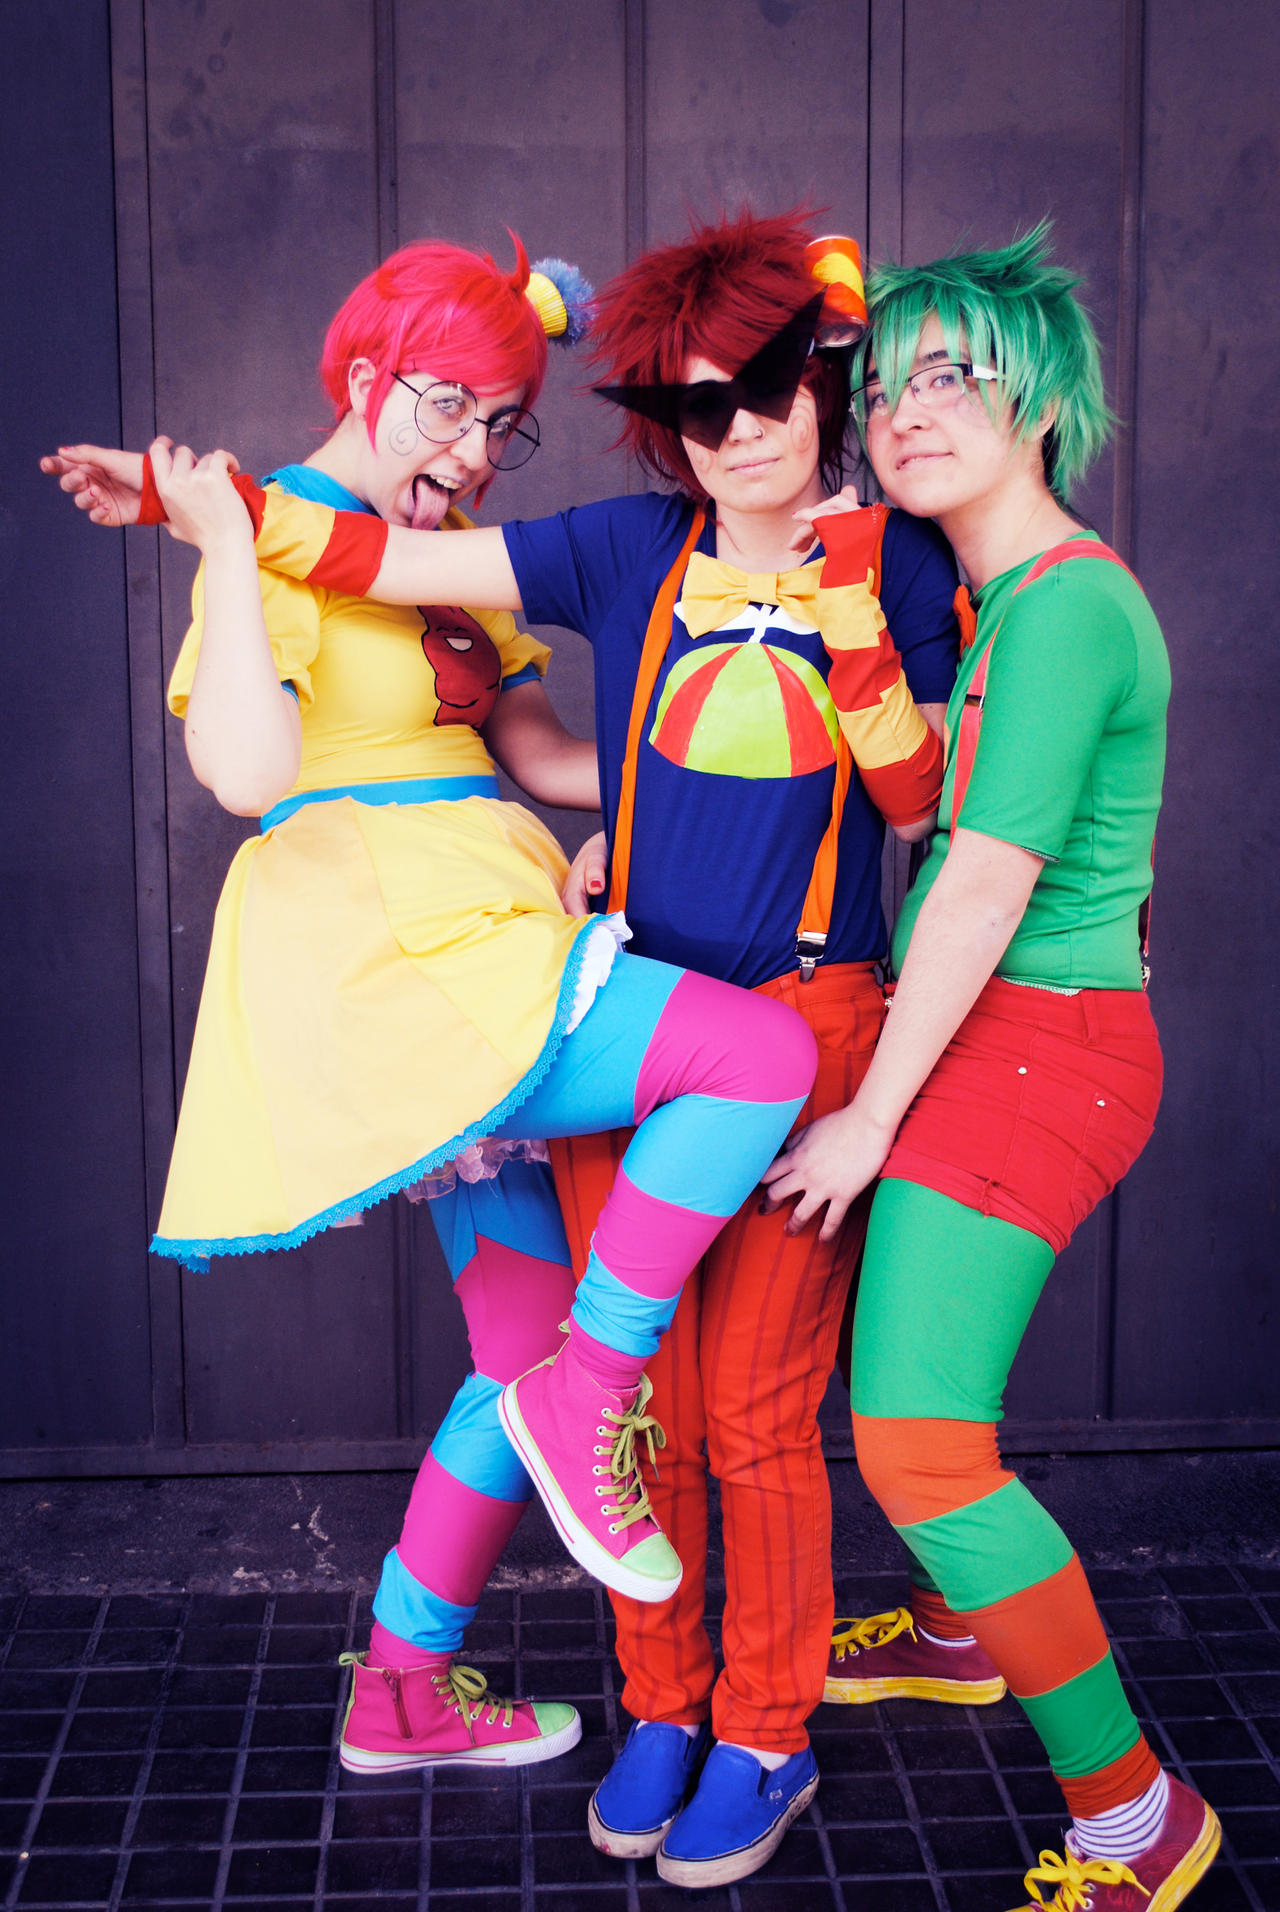 Trickster Roxy And Dirk Trickster trio by nymstarkTrickster Roxy And Dirk